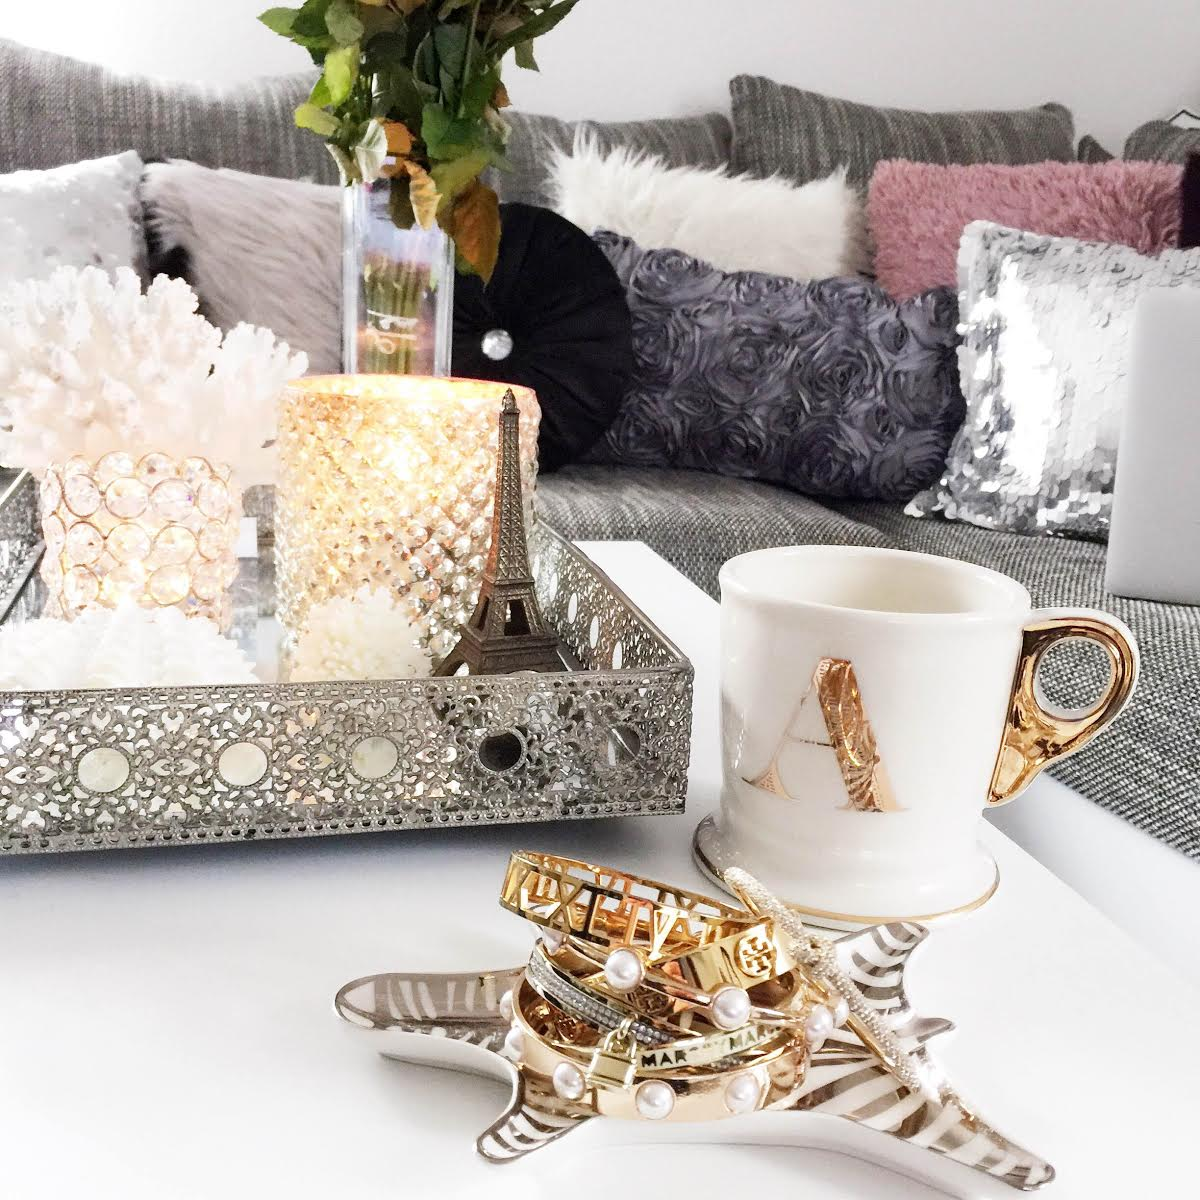 fashionhippieloves-living-room-a-mug-jewelry